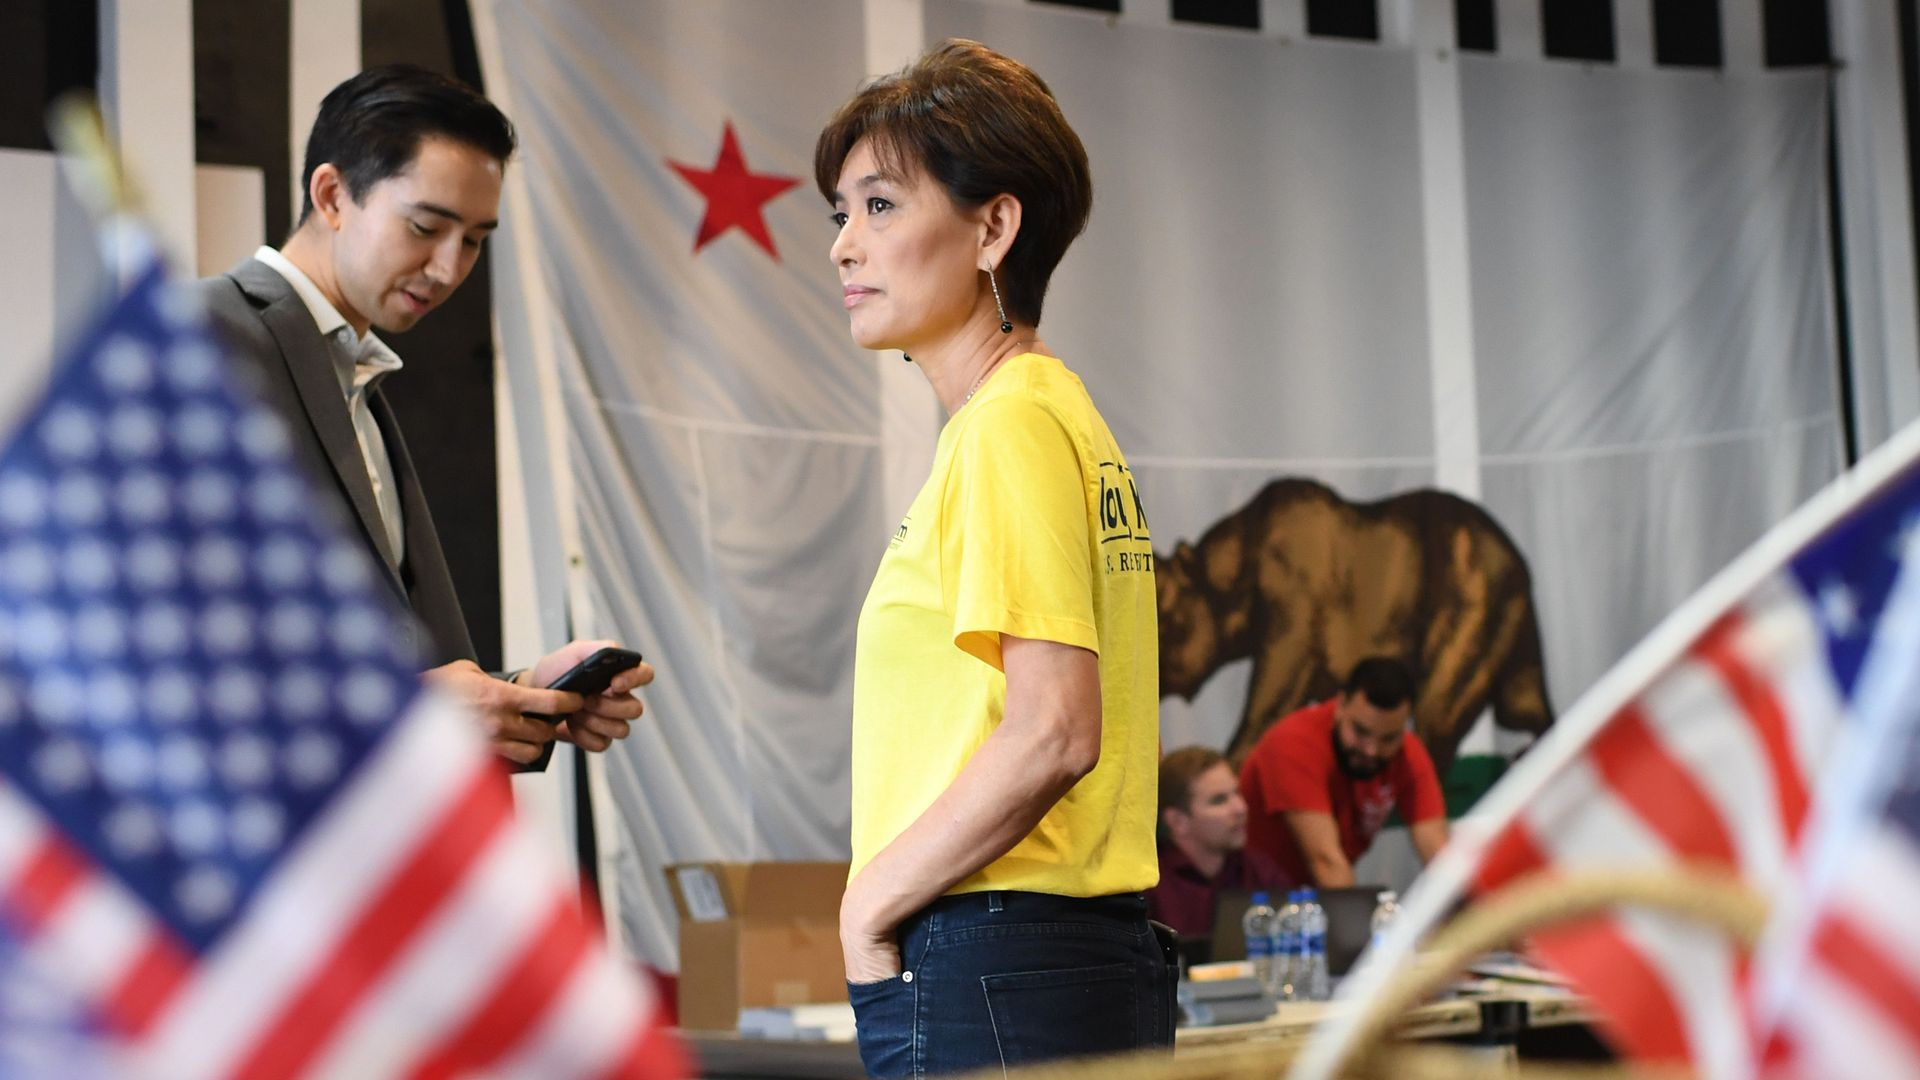 Republican House candidate Young Kim